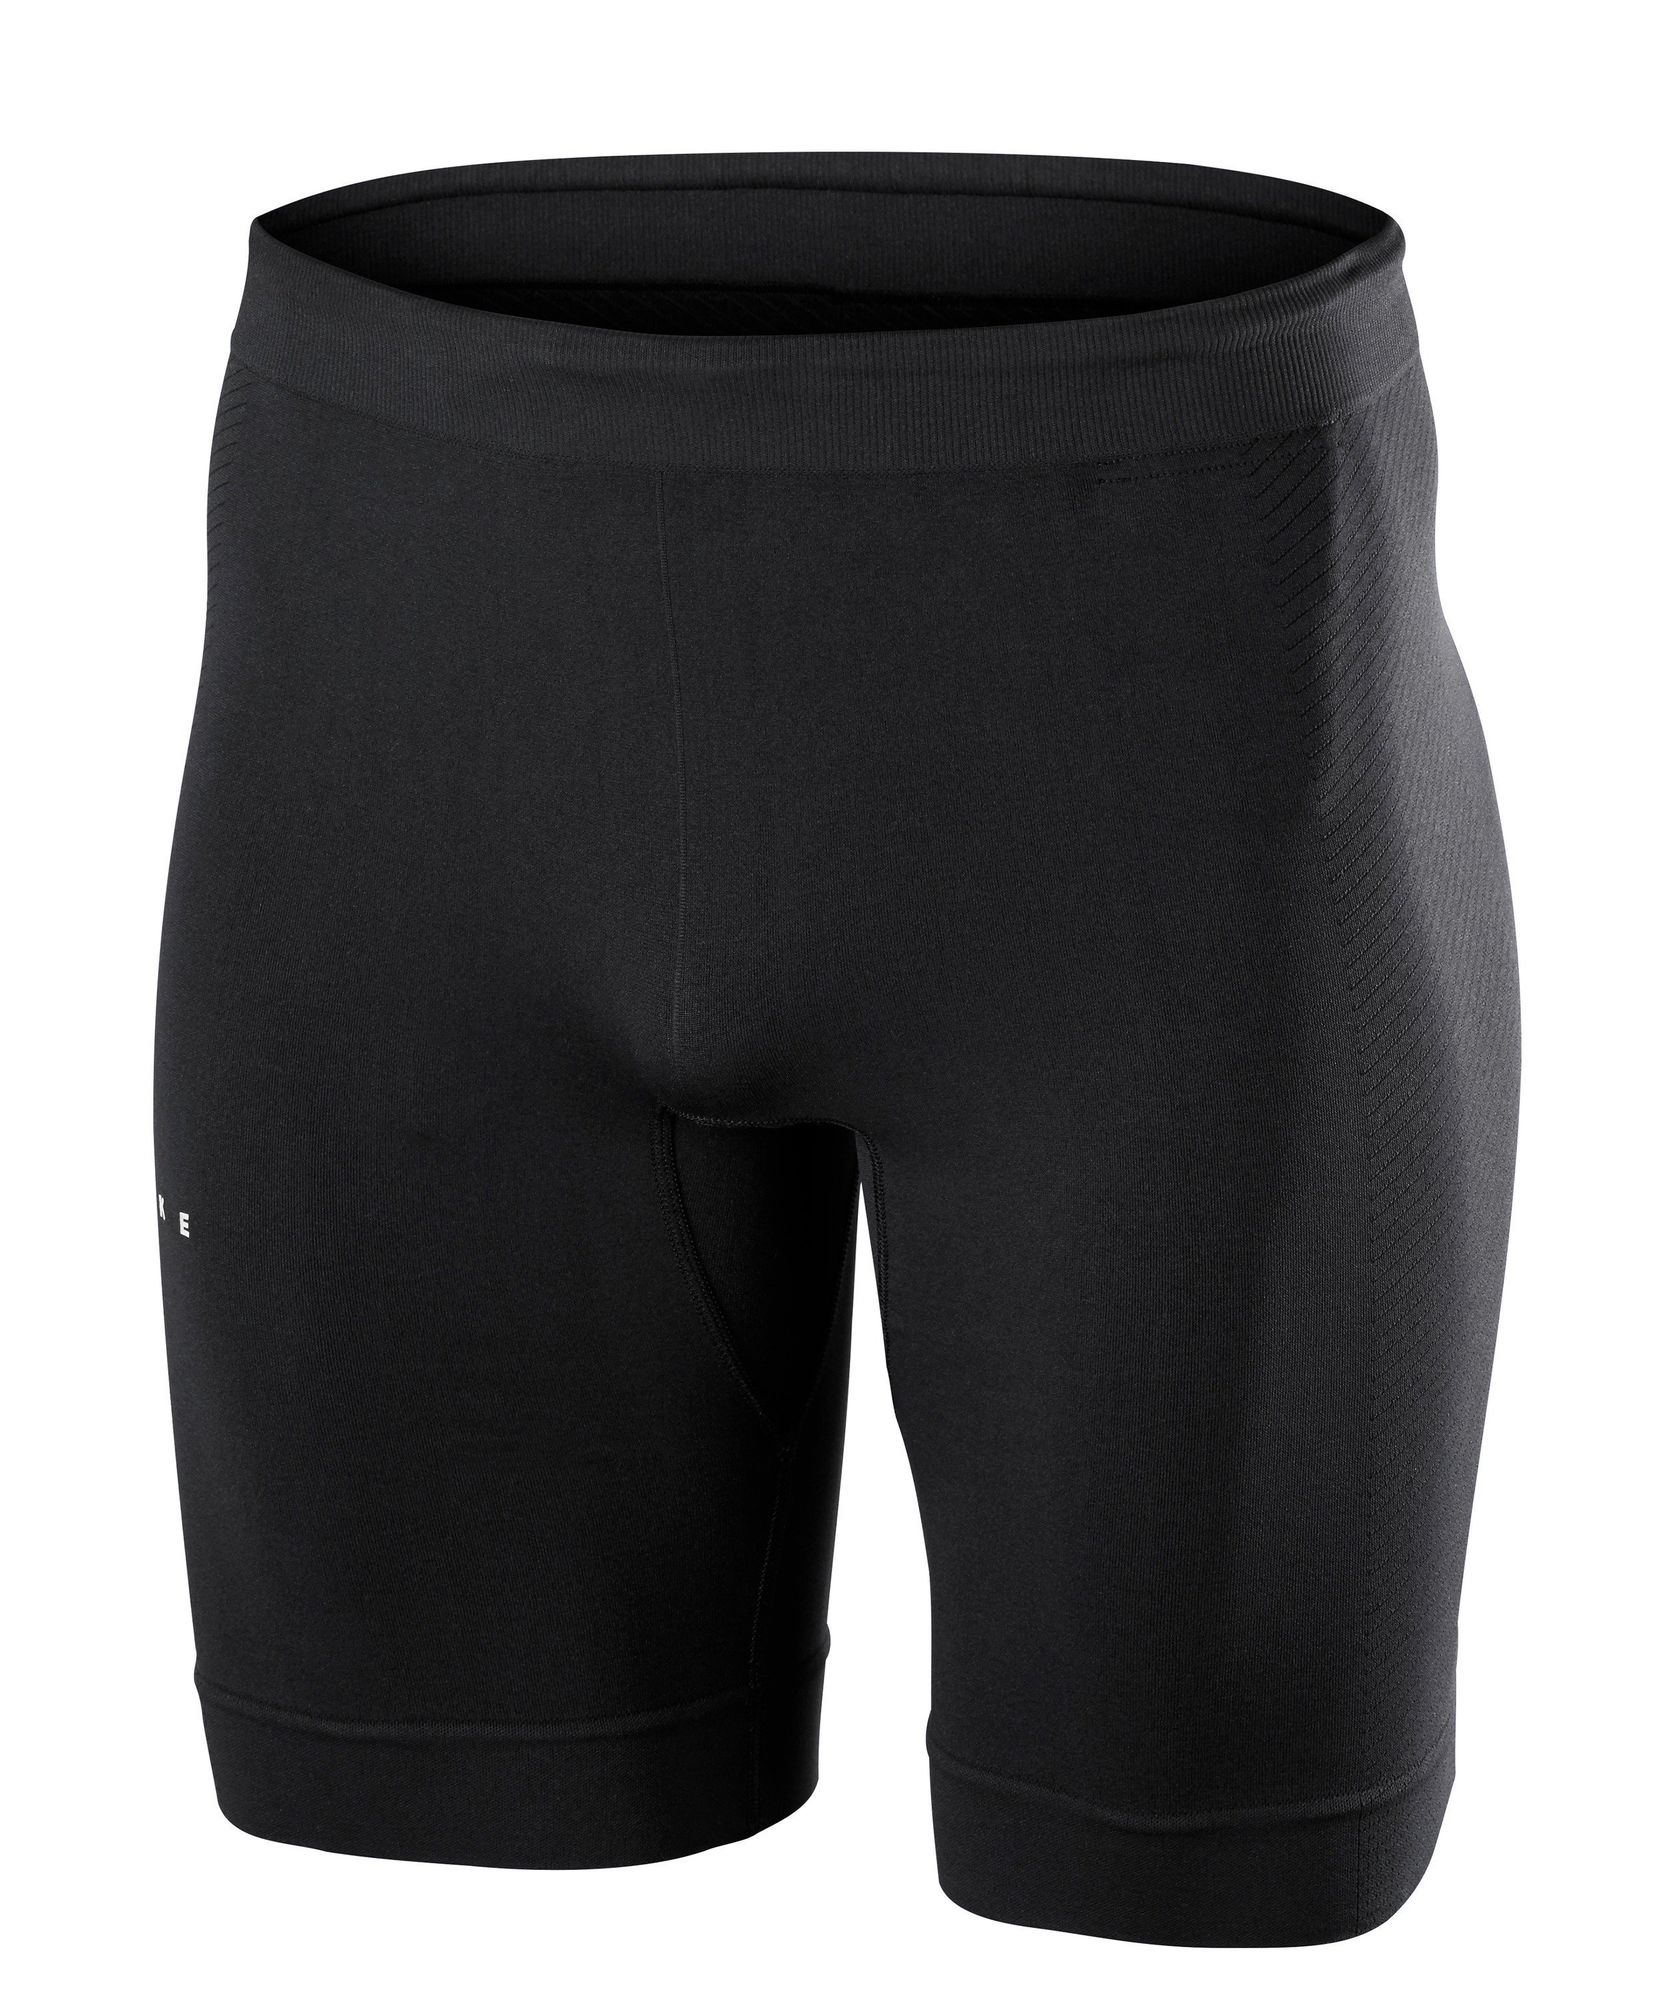 Falke Light Short in Schwarz